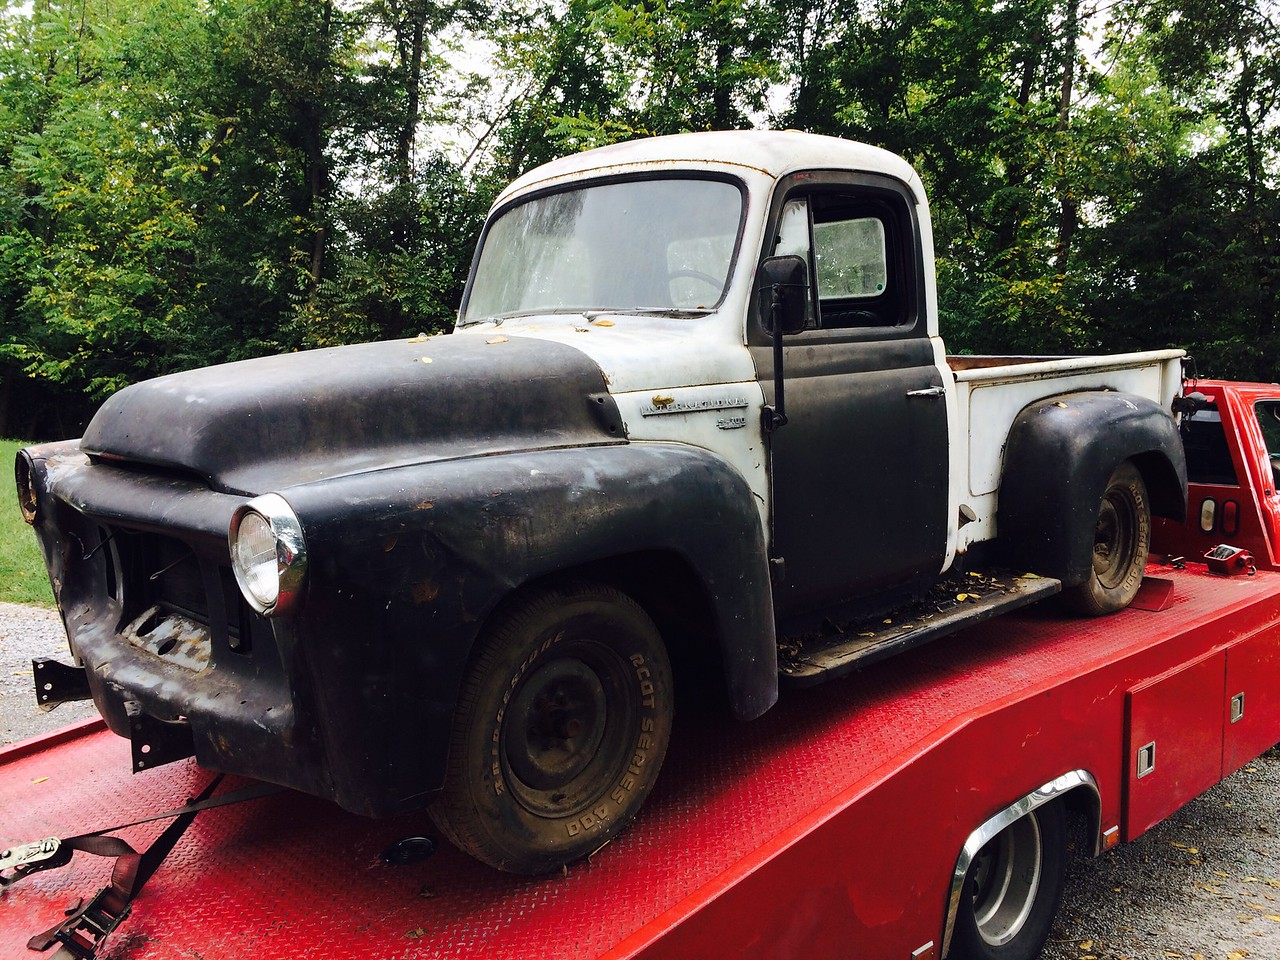 1957 International S-100 Pick Up (Hermitage, Tennessee to Nashville, Tennessee)